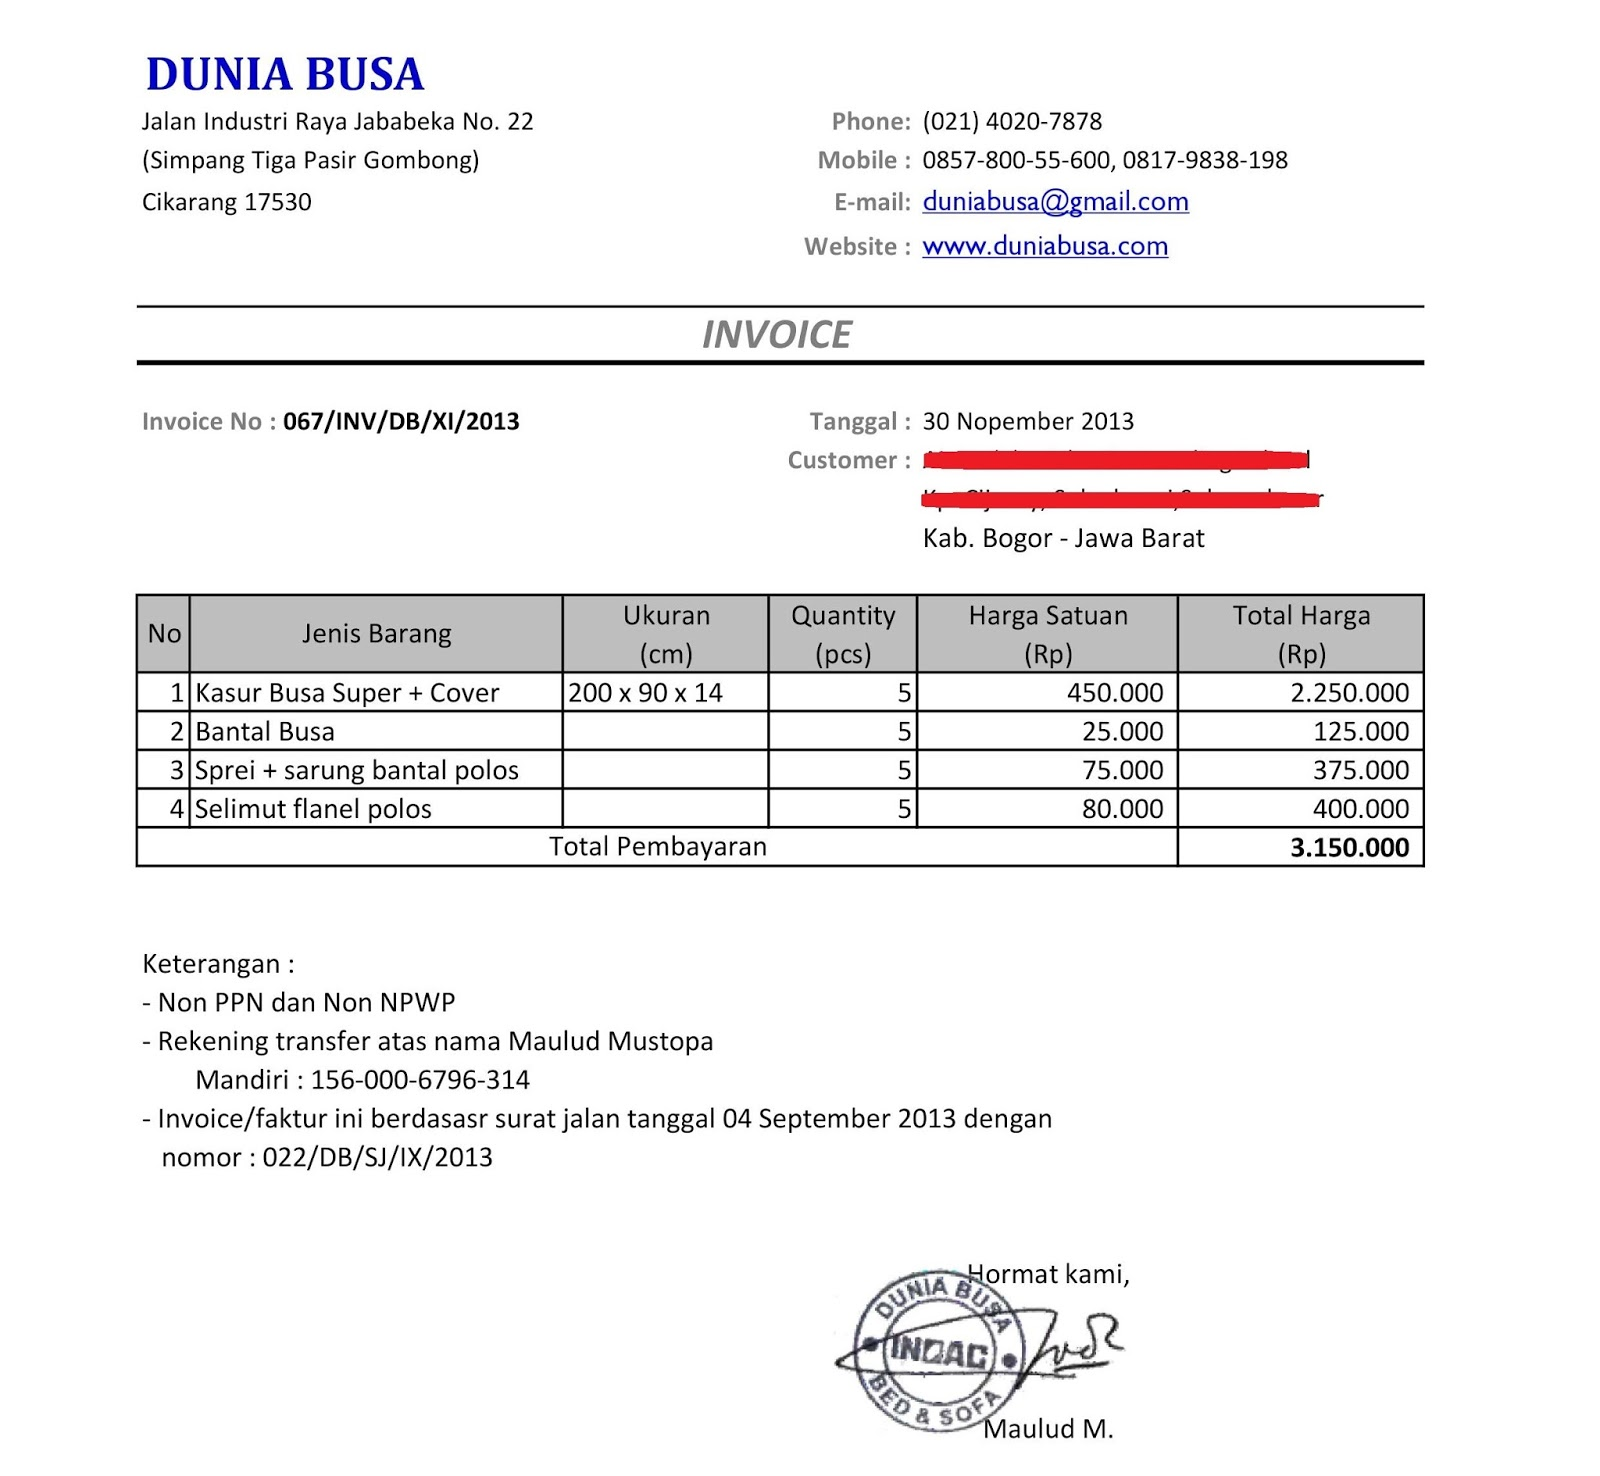 Modaoxus  Pleasant Free Invoice Online  Create Invoice Online  Invoice Template  With Likable Contoh Format Invoice Atau Surat Tagihan  Brankas Arsip  Free Invoice Online With Divine Tax Invoice Sample Also Free Software Invoice In Addition Myob Invoice Template And Performa Invoice Or Proforma Invoice As Well As Commercial Invoice Sample Excel Additionally Zoho Invoice Sign In From Sklepco With Modaoxus  Likable Free Invoice Online  Create Invoice Online  Invoice Template  With Divine Contoh Format Invoice Atau Surat Tagihan  Brankas Arsip  Free Invoice Online And Pleasant Tax Invoice Sample Also Free Software Invoice In Addition Myob Invoice Template From Sklepco